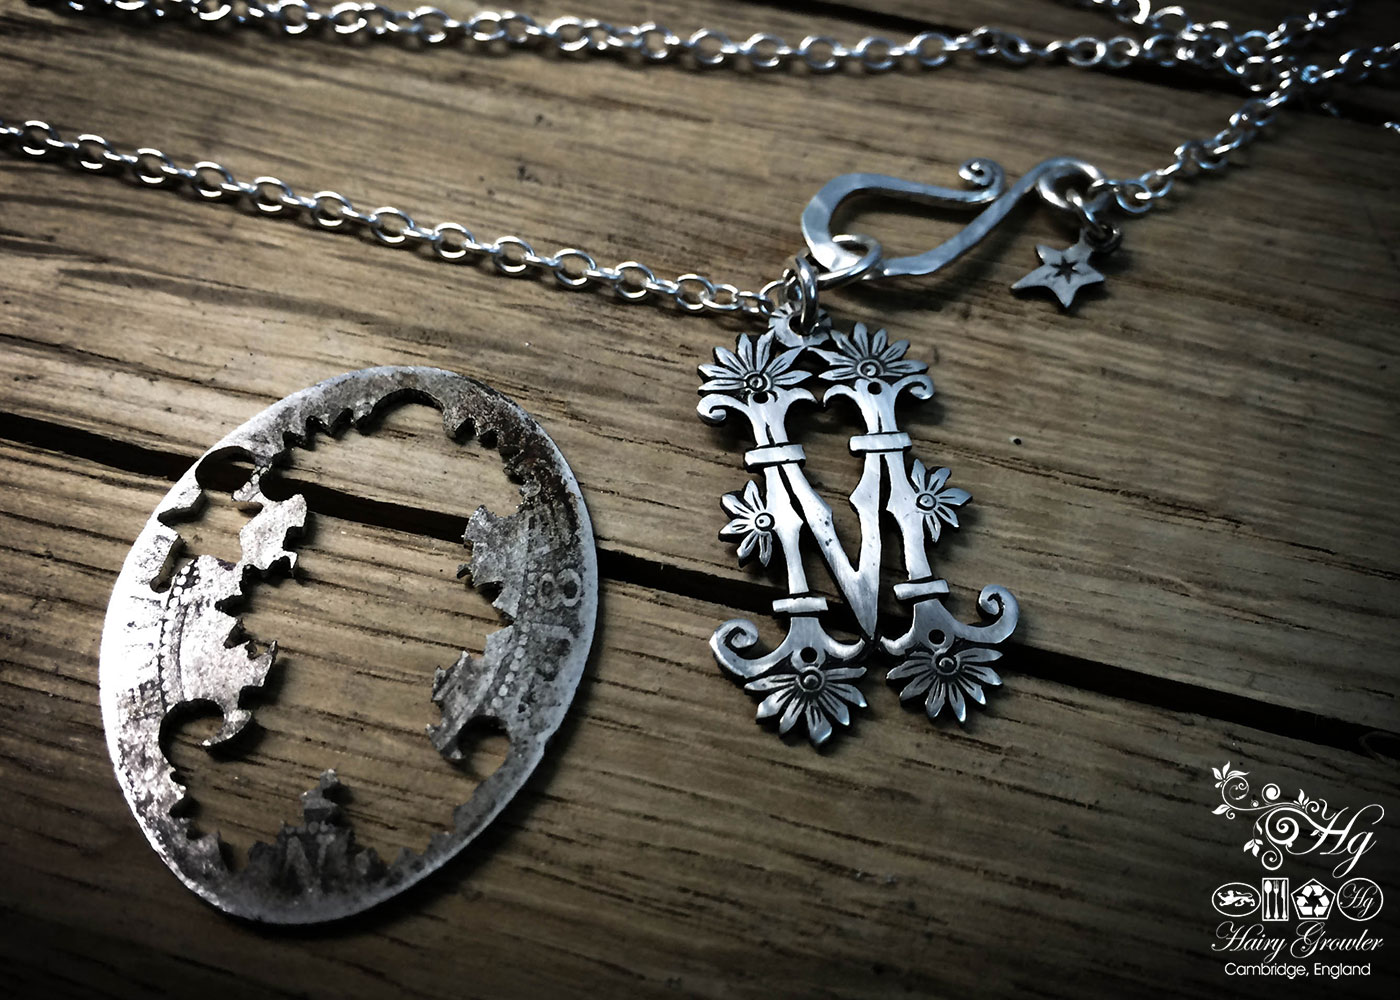 handmade, upcycled, contemporary and original silver coin initial necklace pendant